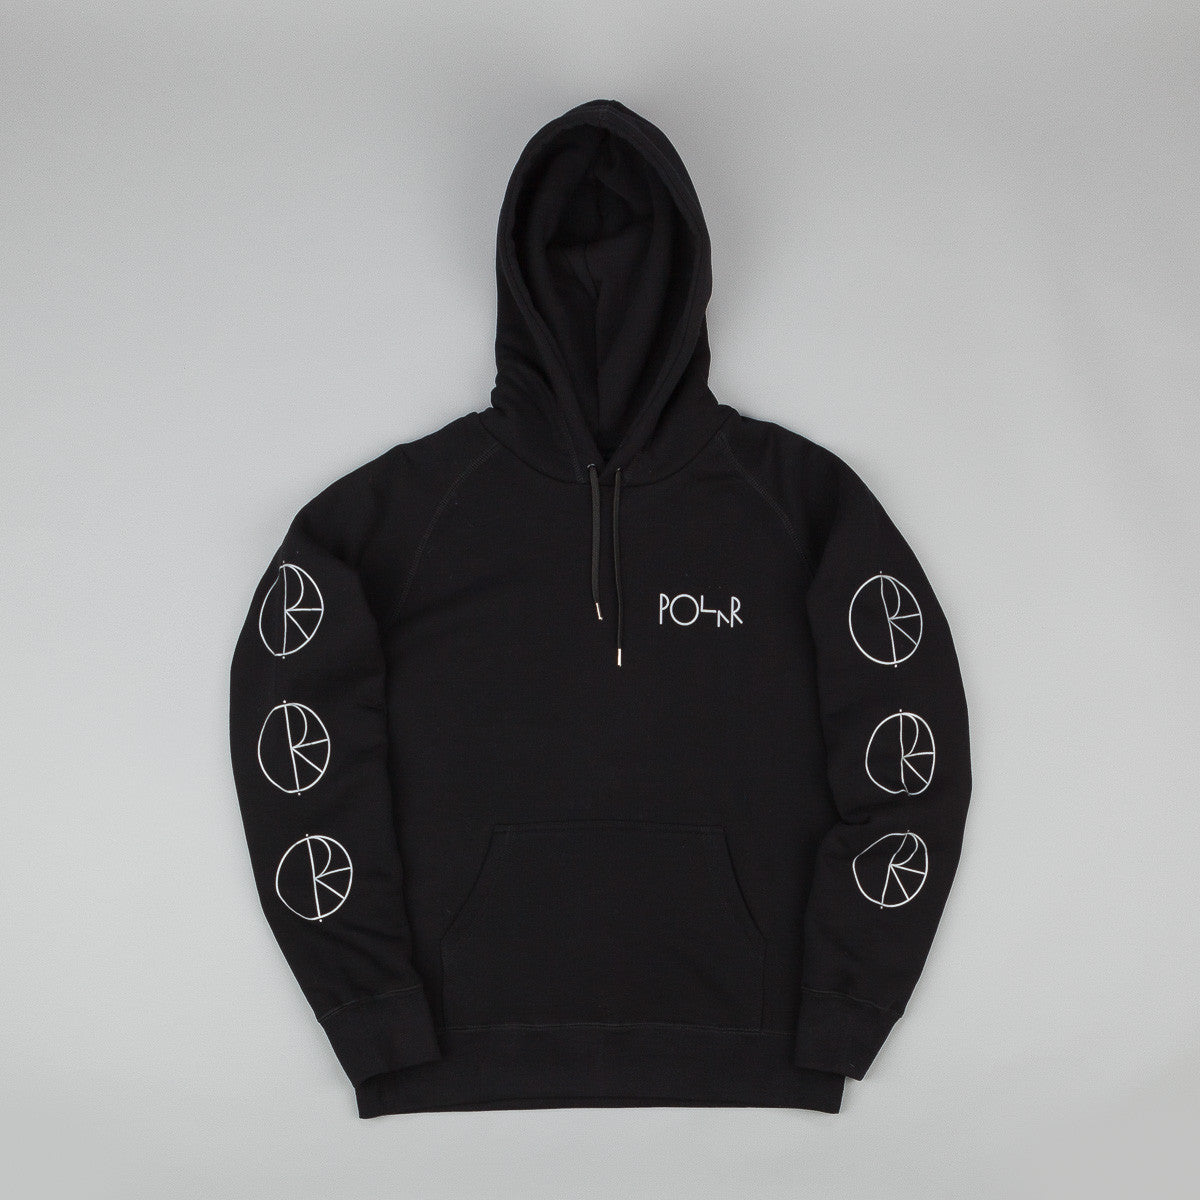 Polar Racing Hooded Sweatshirt - Black / Reflective Silver